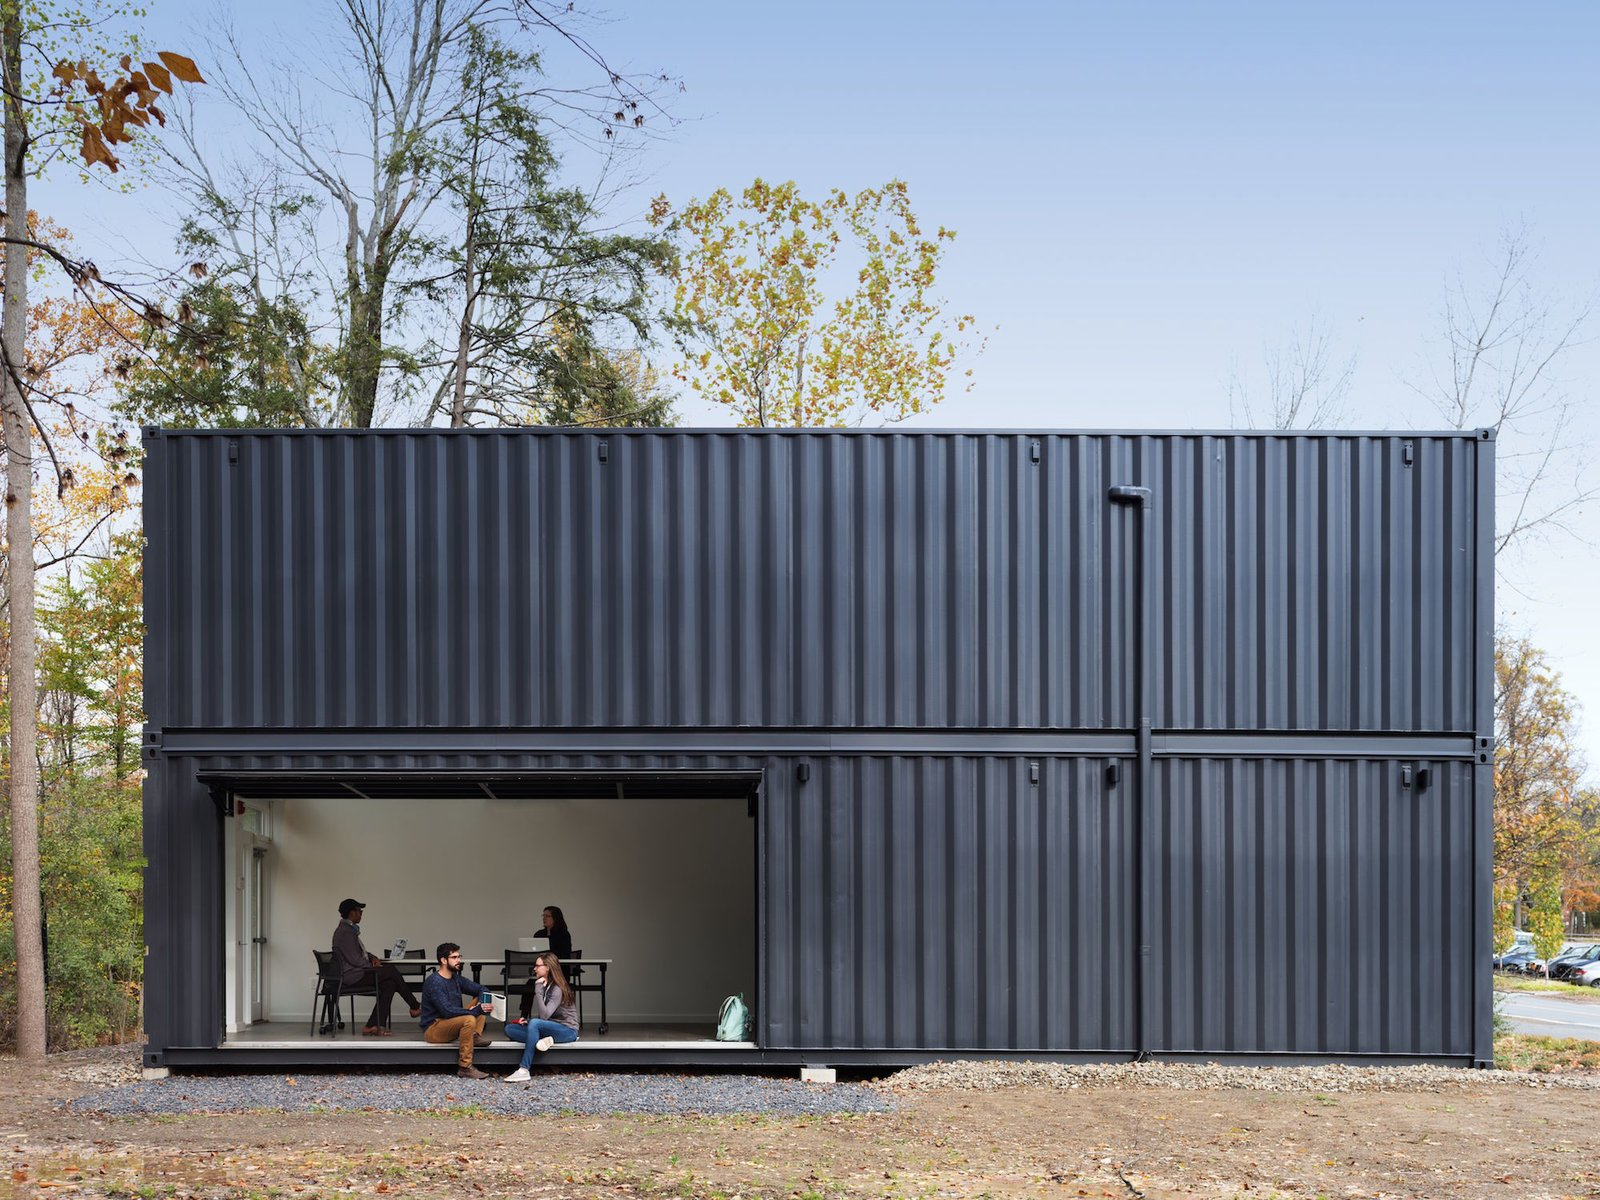 Best Kitchen Gallery: A Shipping Container Prefab Lab Is Built In Only 4 Hours Dwell of Lab Shipping Container on rachelxblog.com